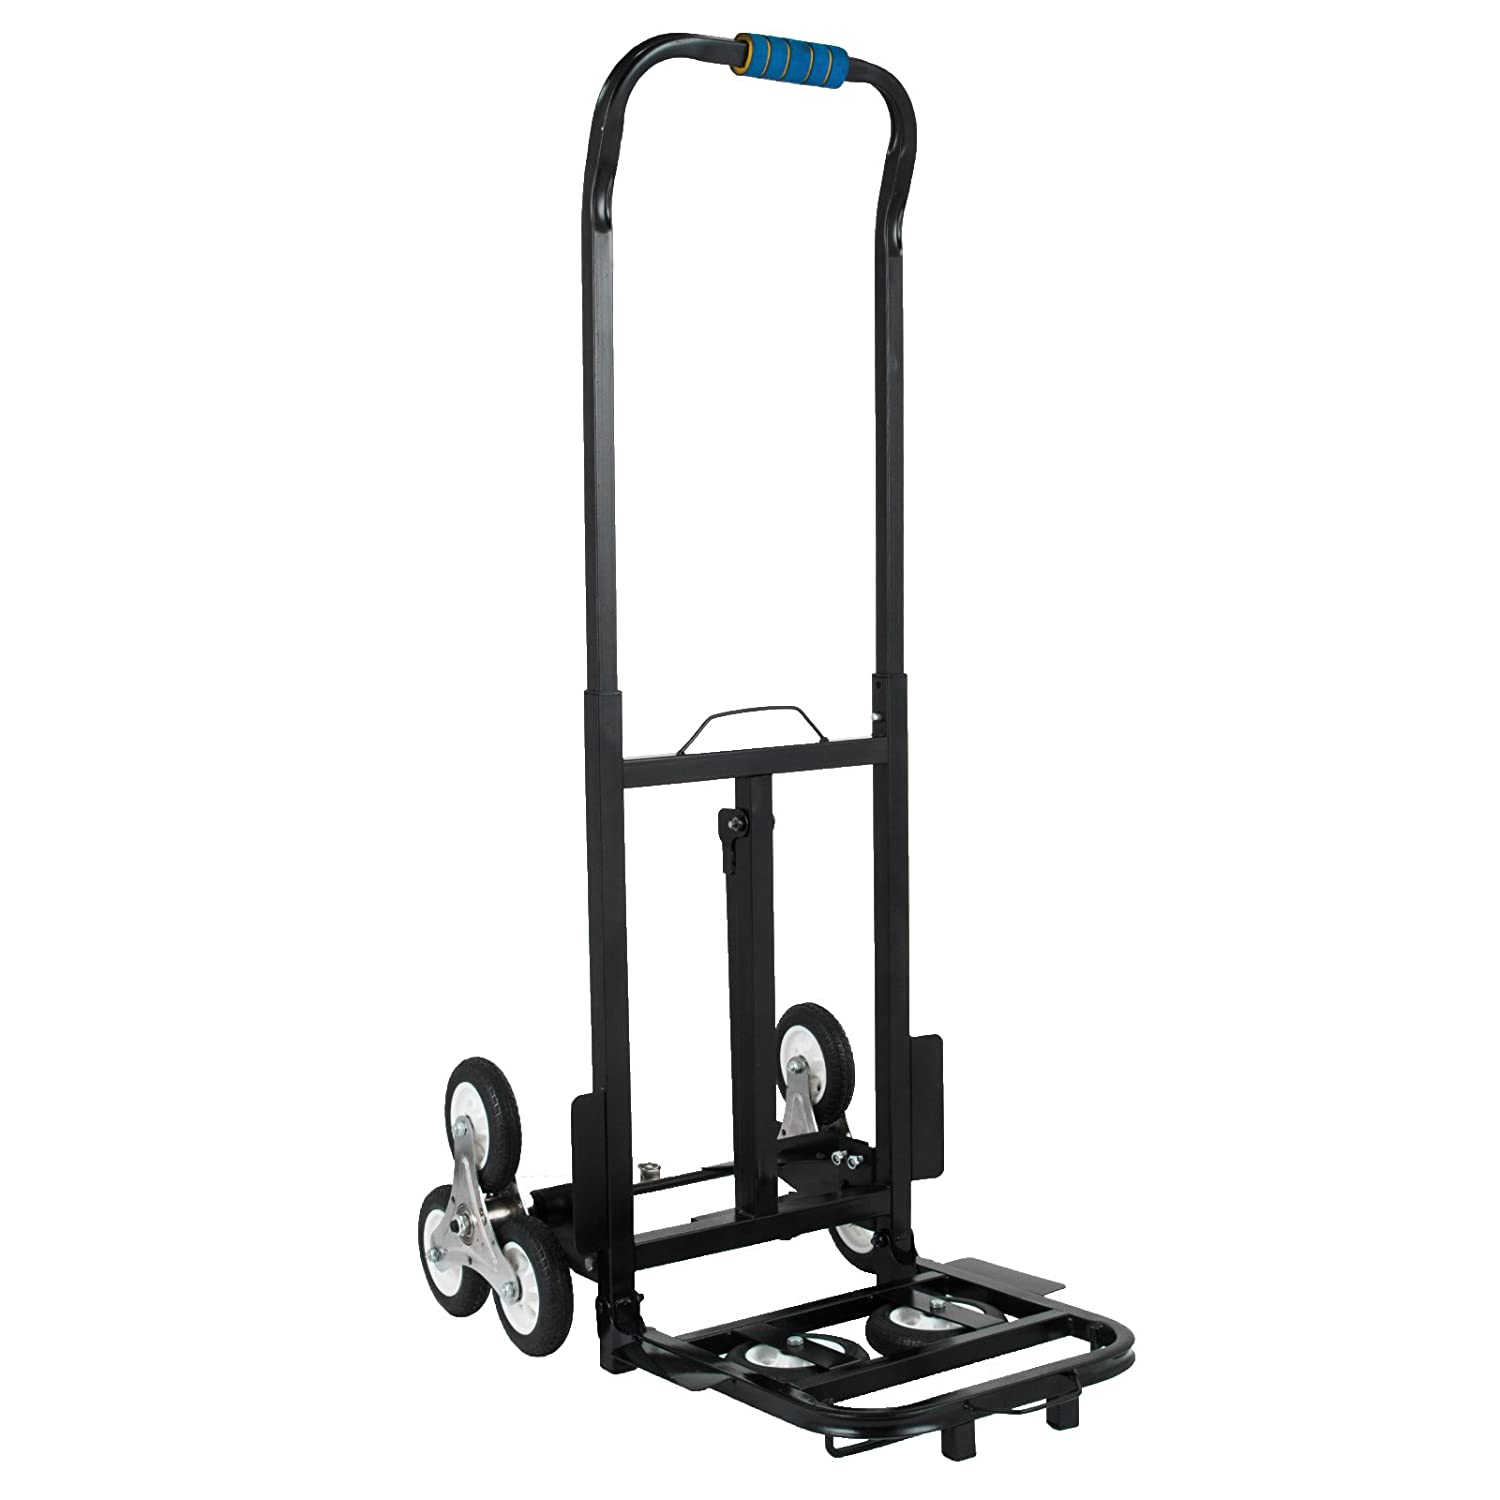 VEVOR Stair Climbing Cart 45 Inches Portable Hand Truck 2x Three-wheel Hand Truck Stair Climber 330LB Capacity Folding Stair Hand Truck Heavy Duty With 2 Backup Wheels